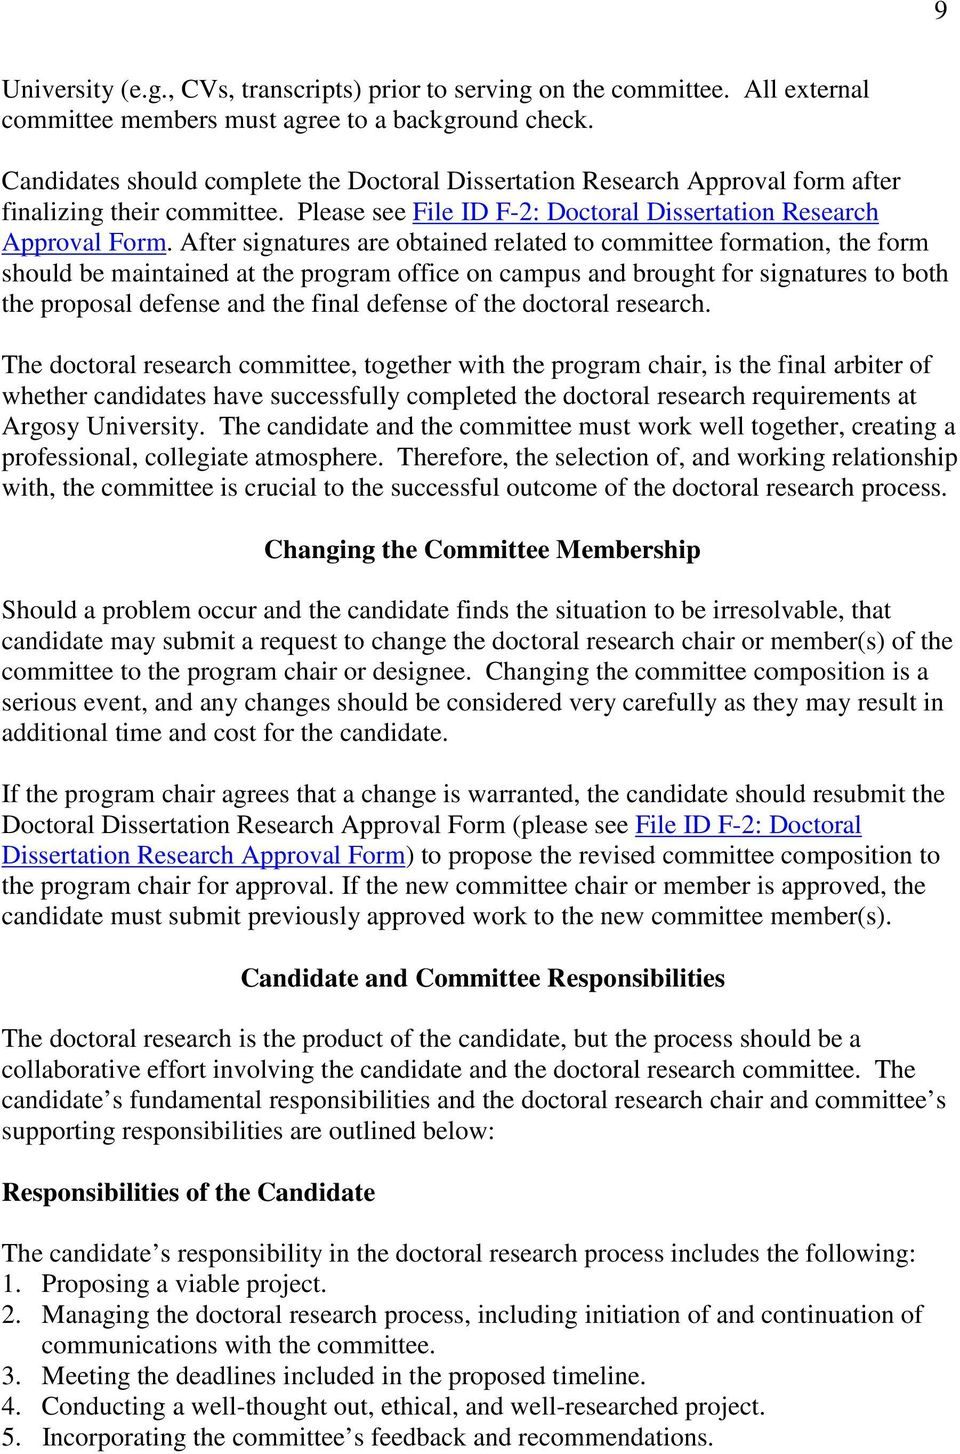 After signatures are obtained related to committee formation, the form should be maintained at the program office on campus and brought for signatures to both the proposal defense and the final